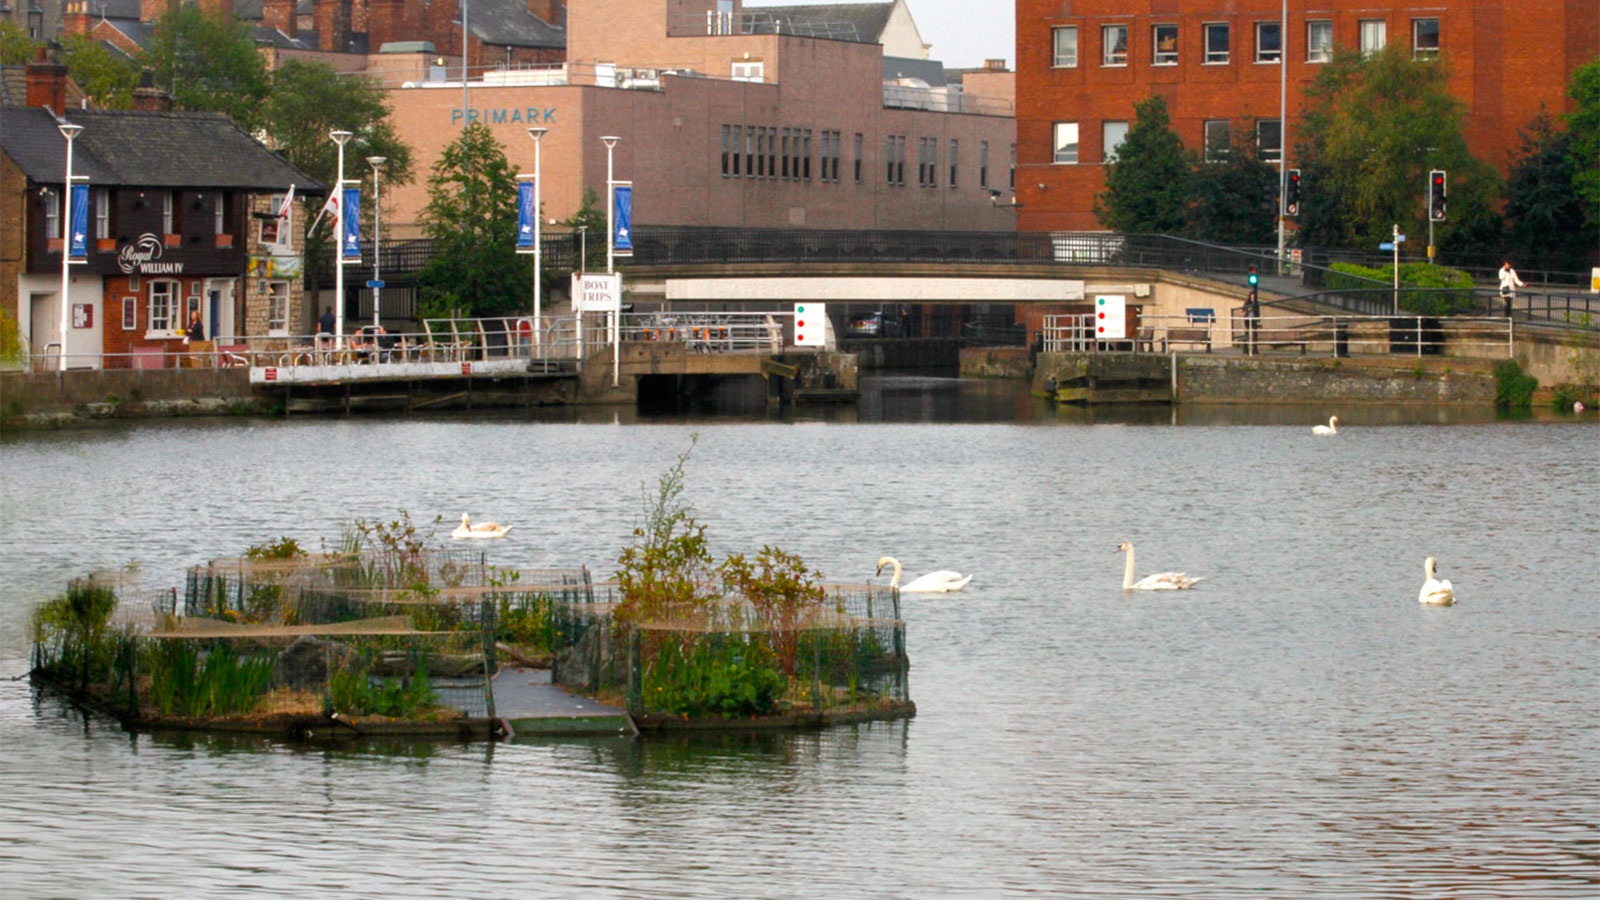 Floating island in Lincoln England